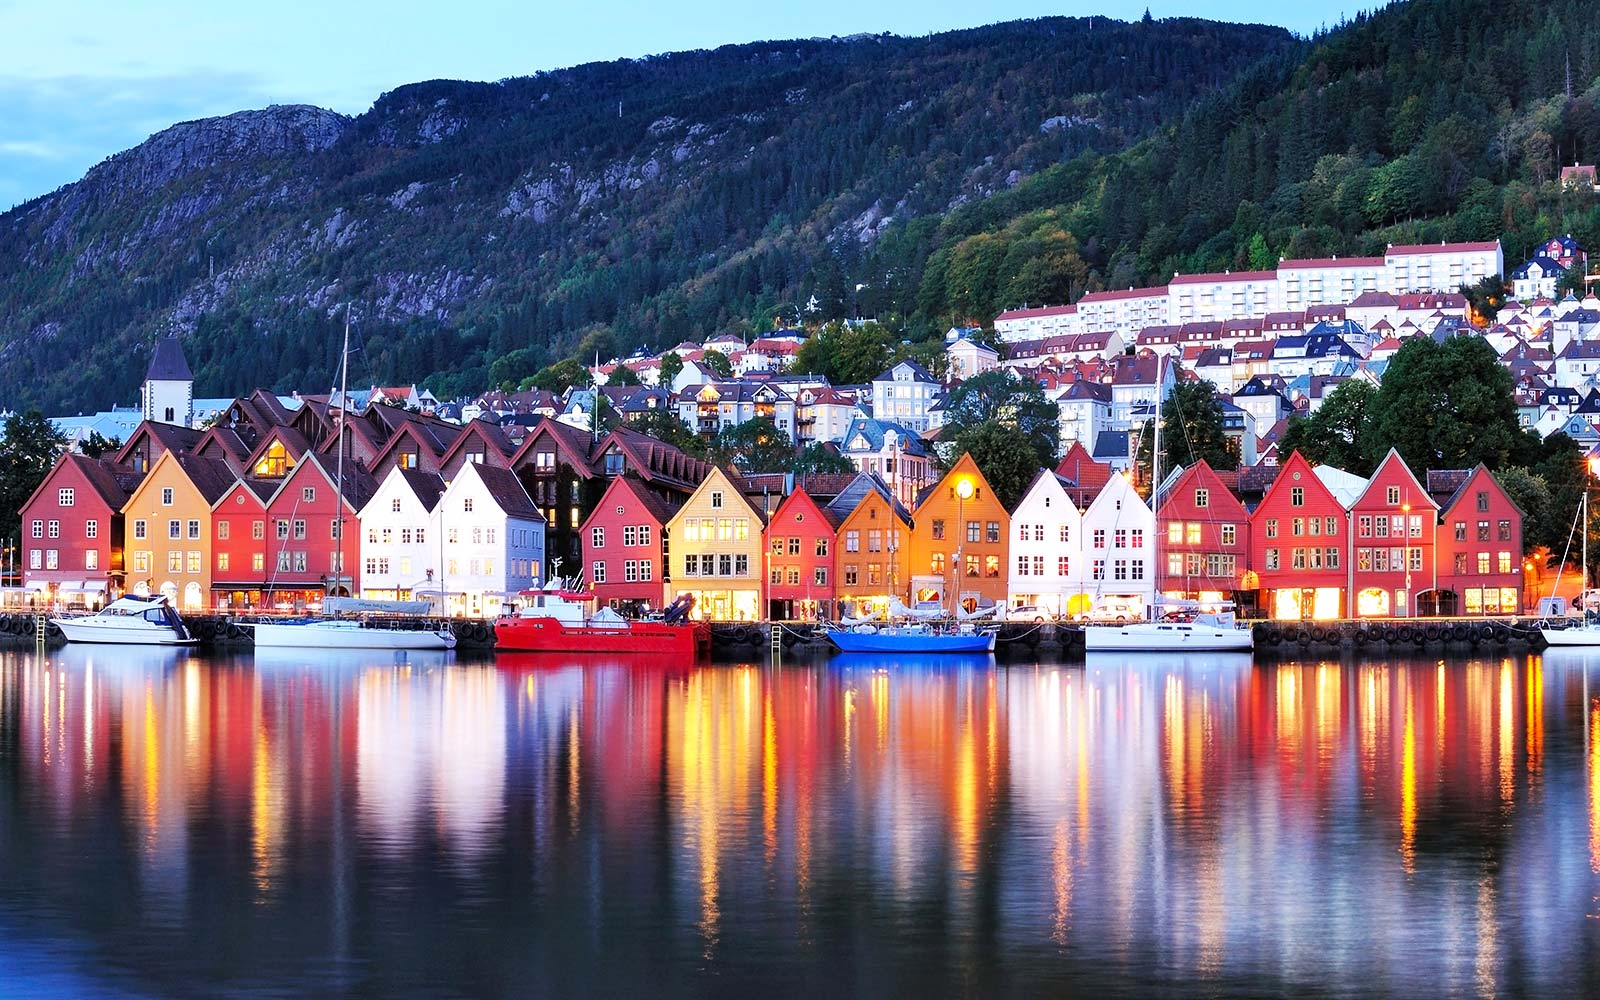 Flight Deals to Norway: $89 One-way from U.S.